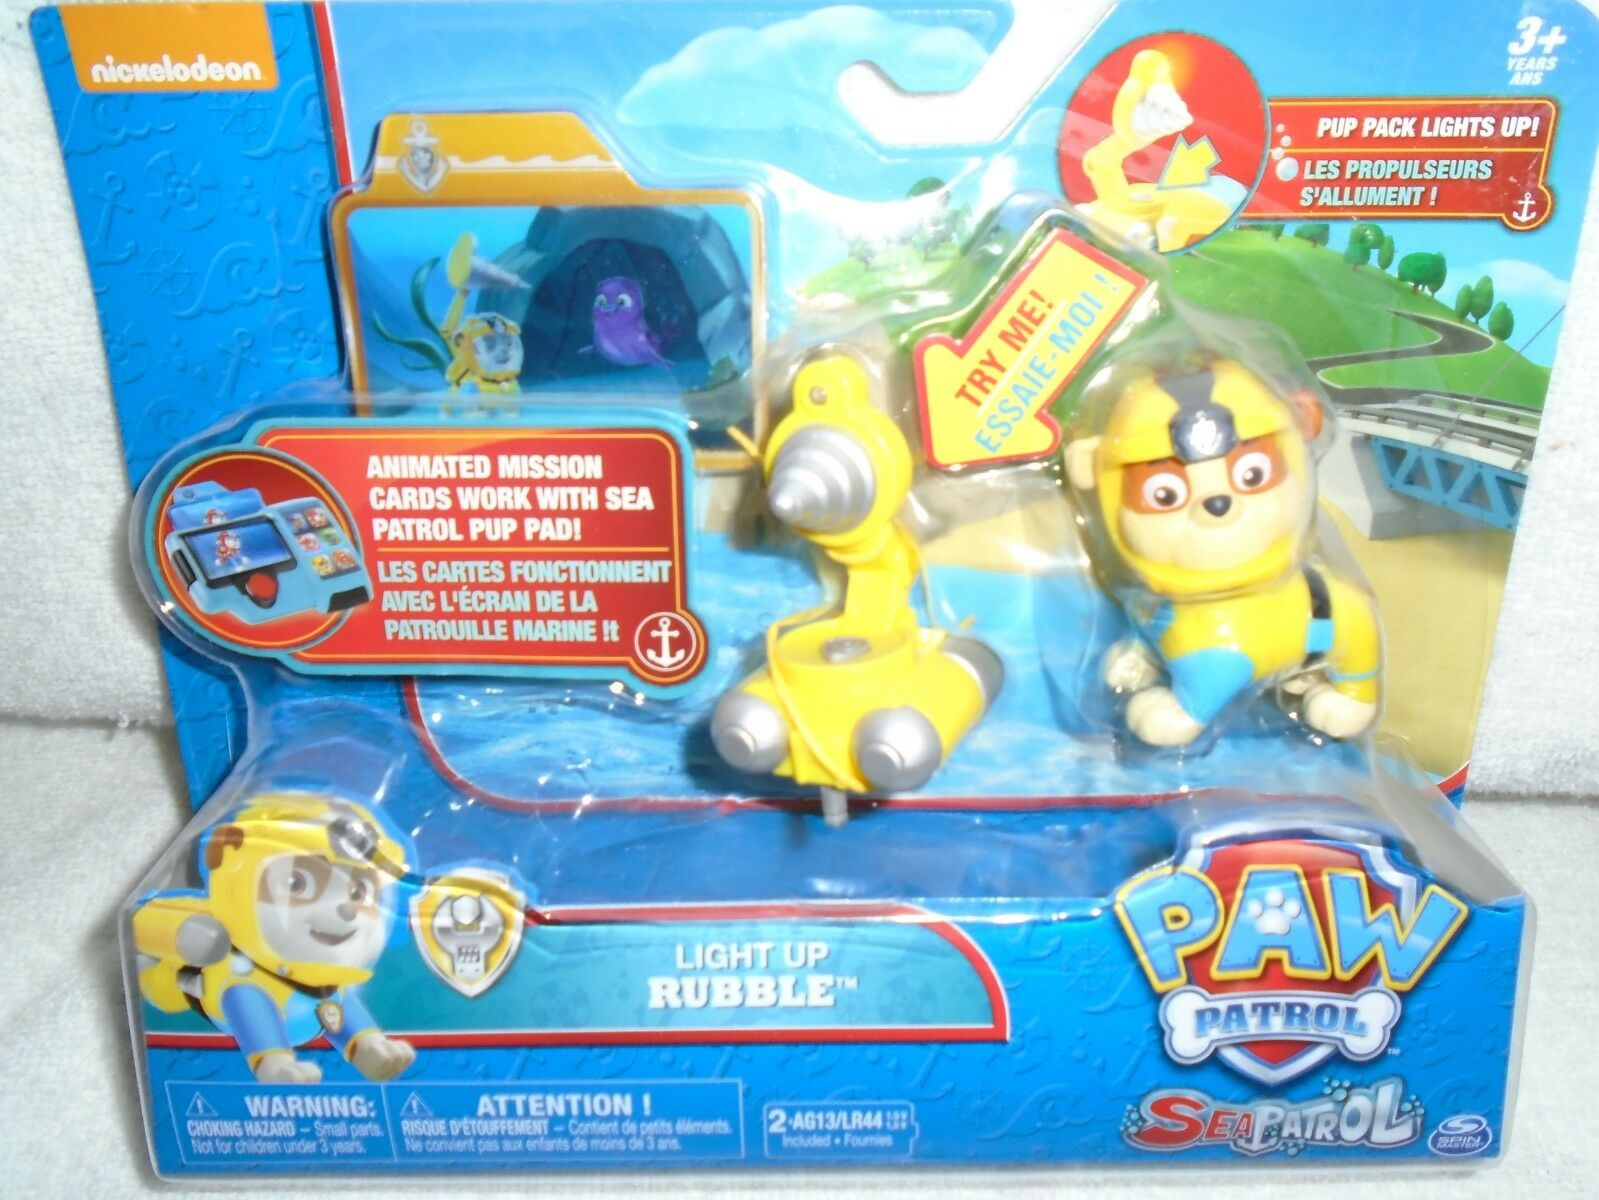 paw patrol light up rubble with pup